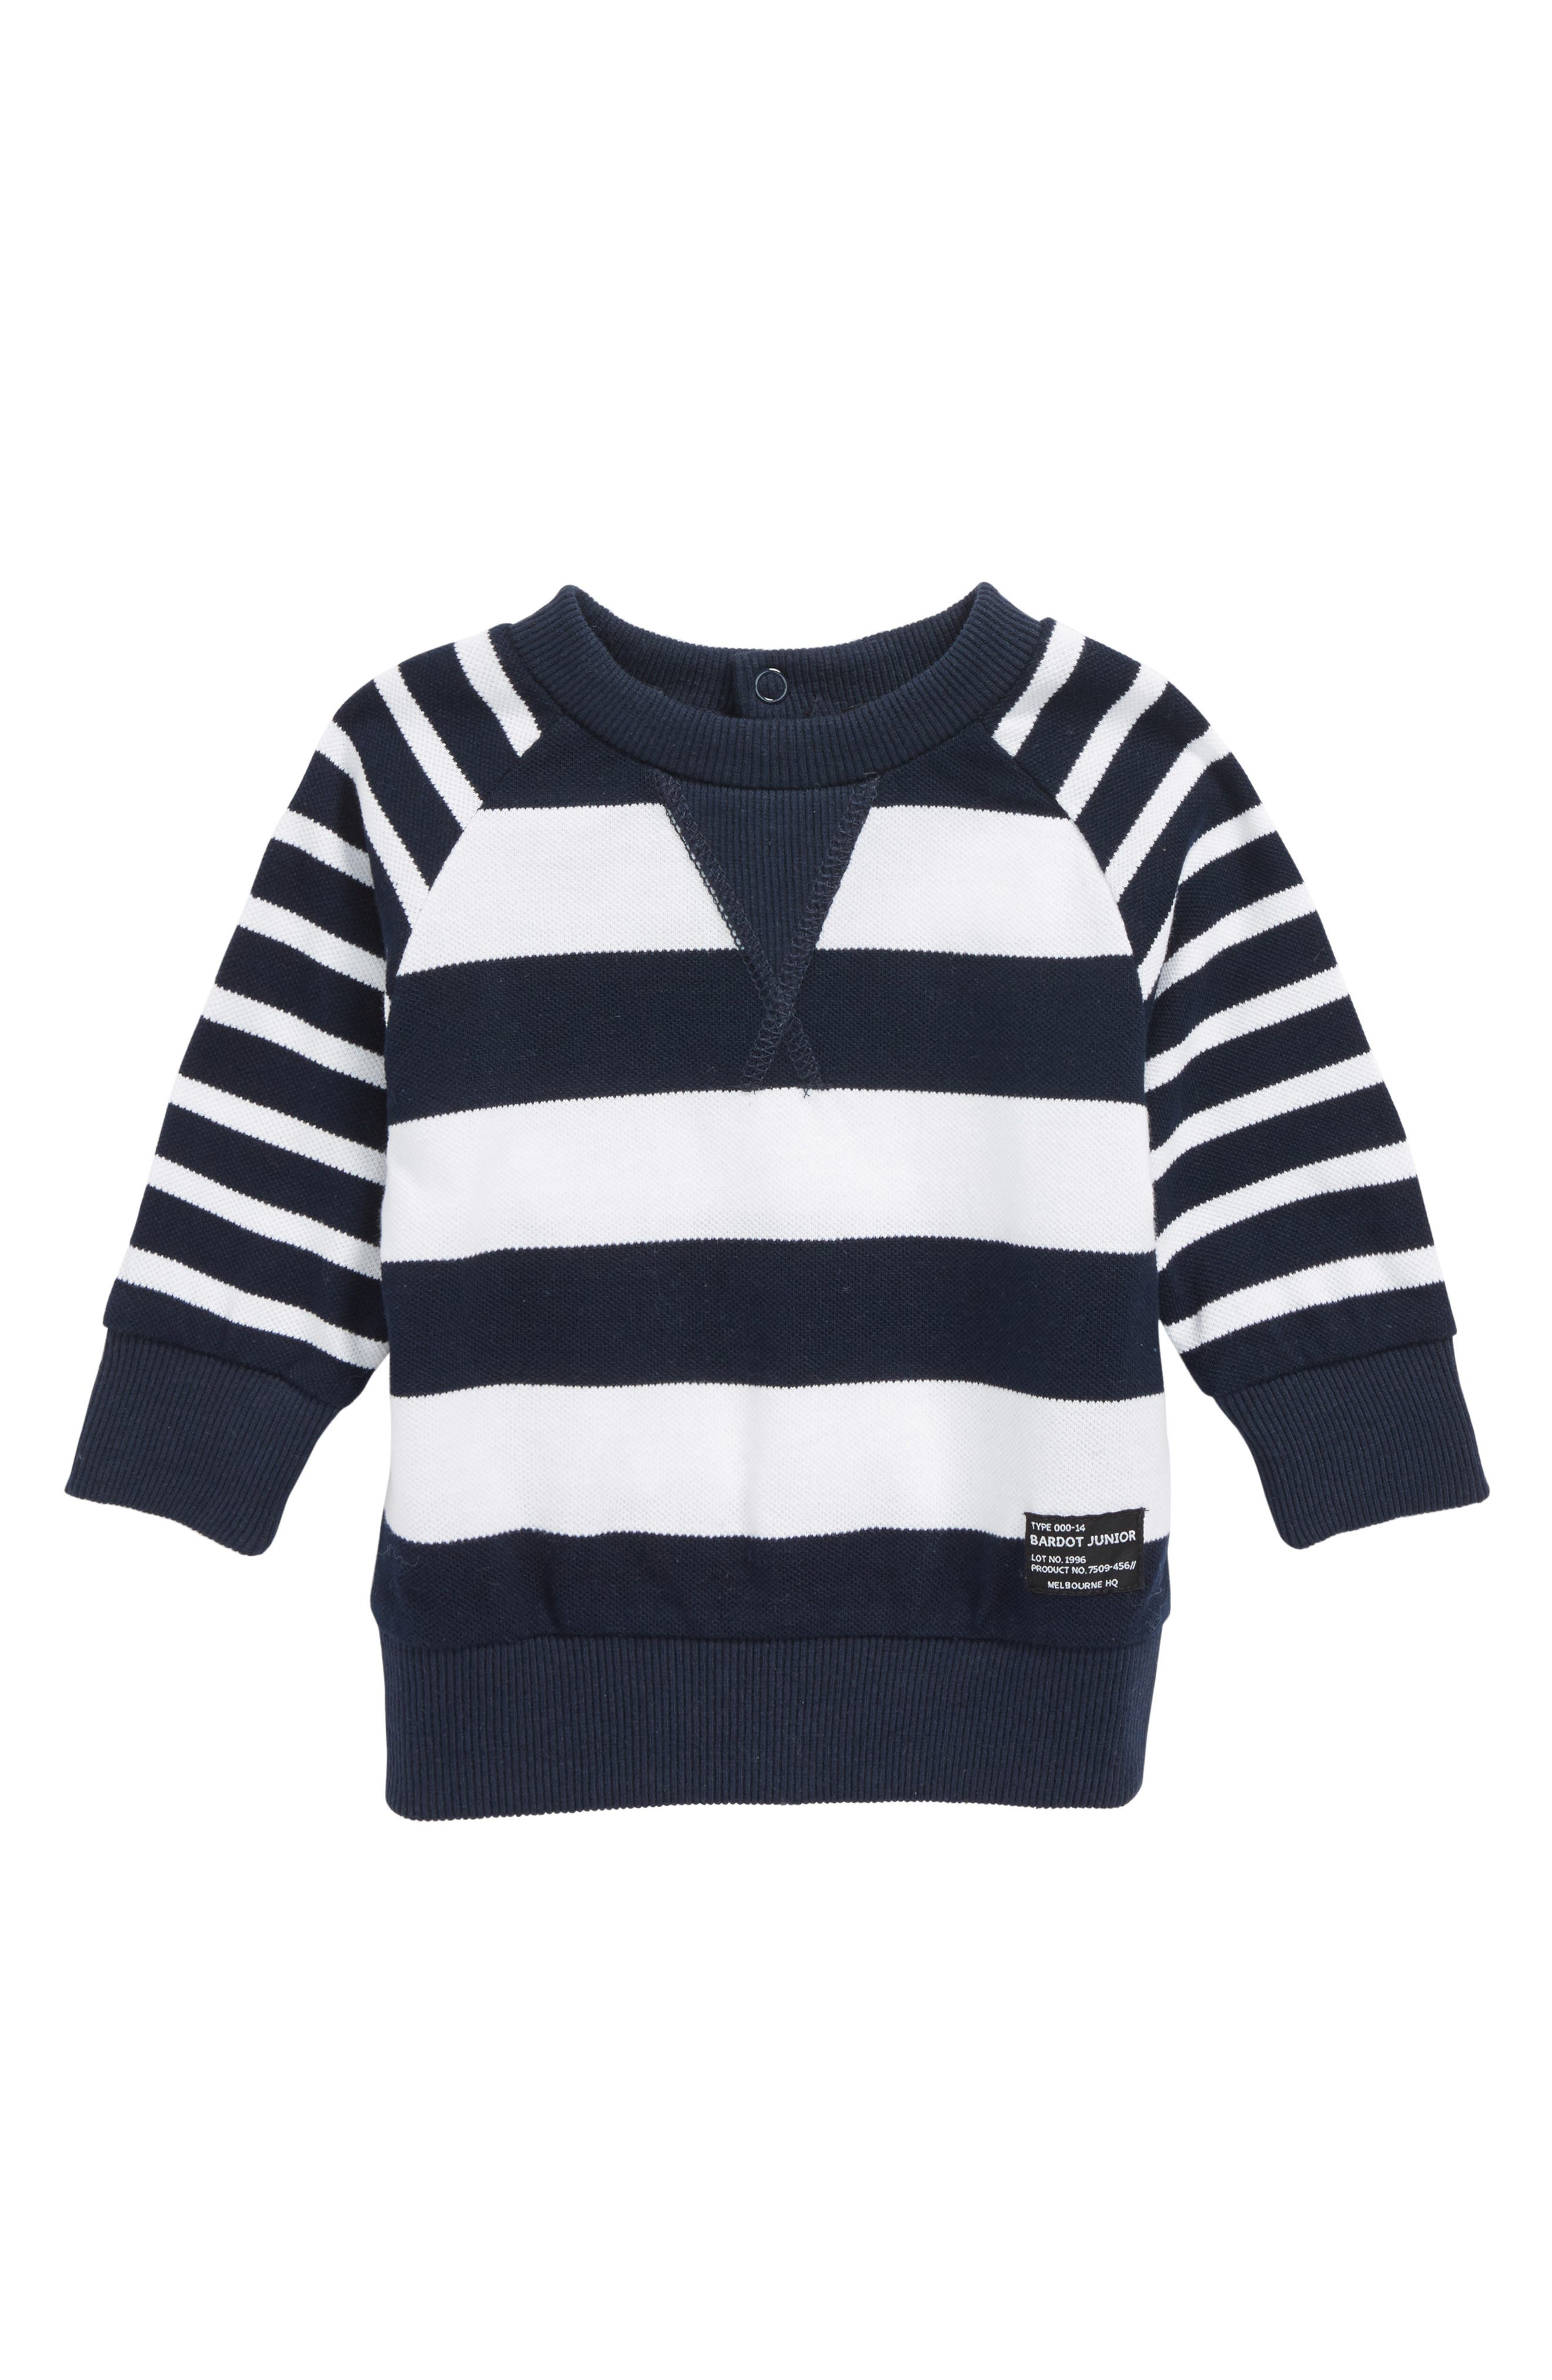 Stripe Sweater,                             Main thumbnail 1, color,                             Navy/ White